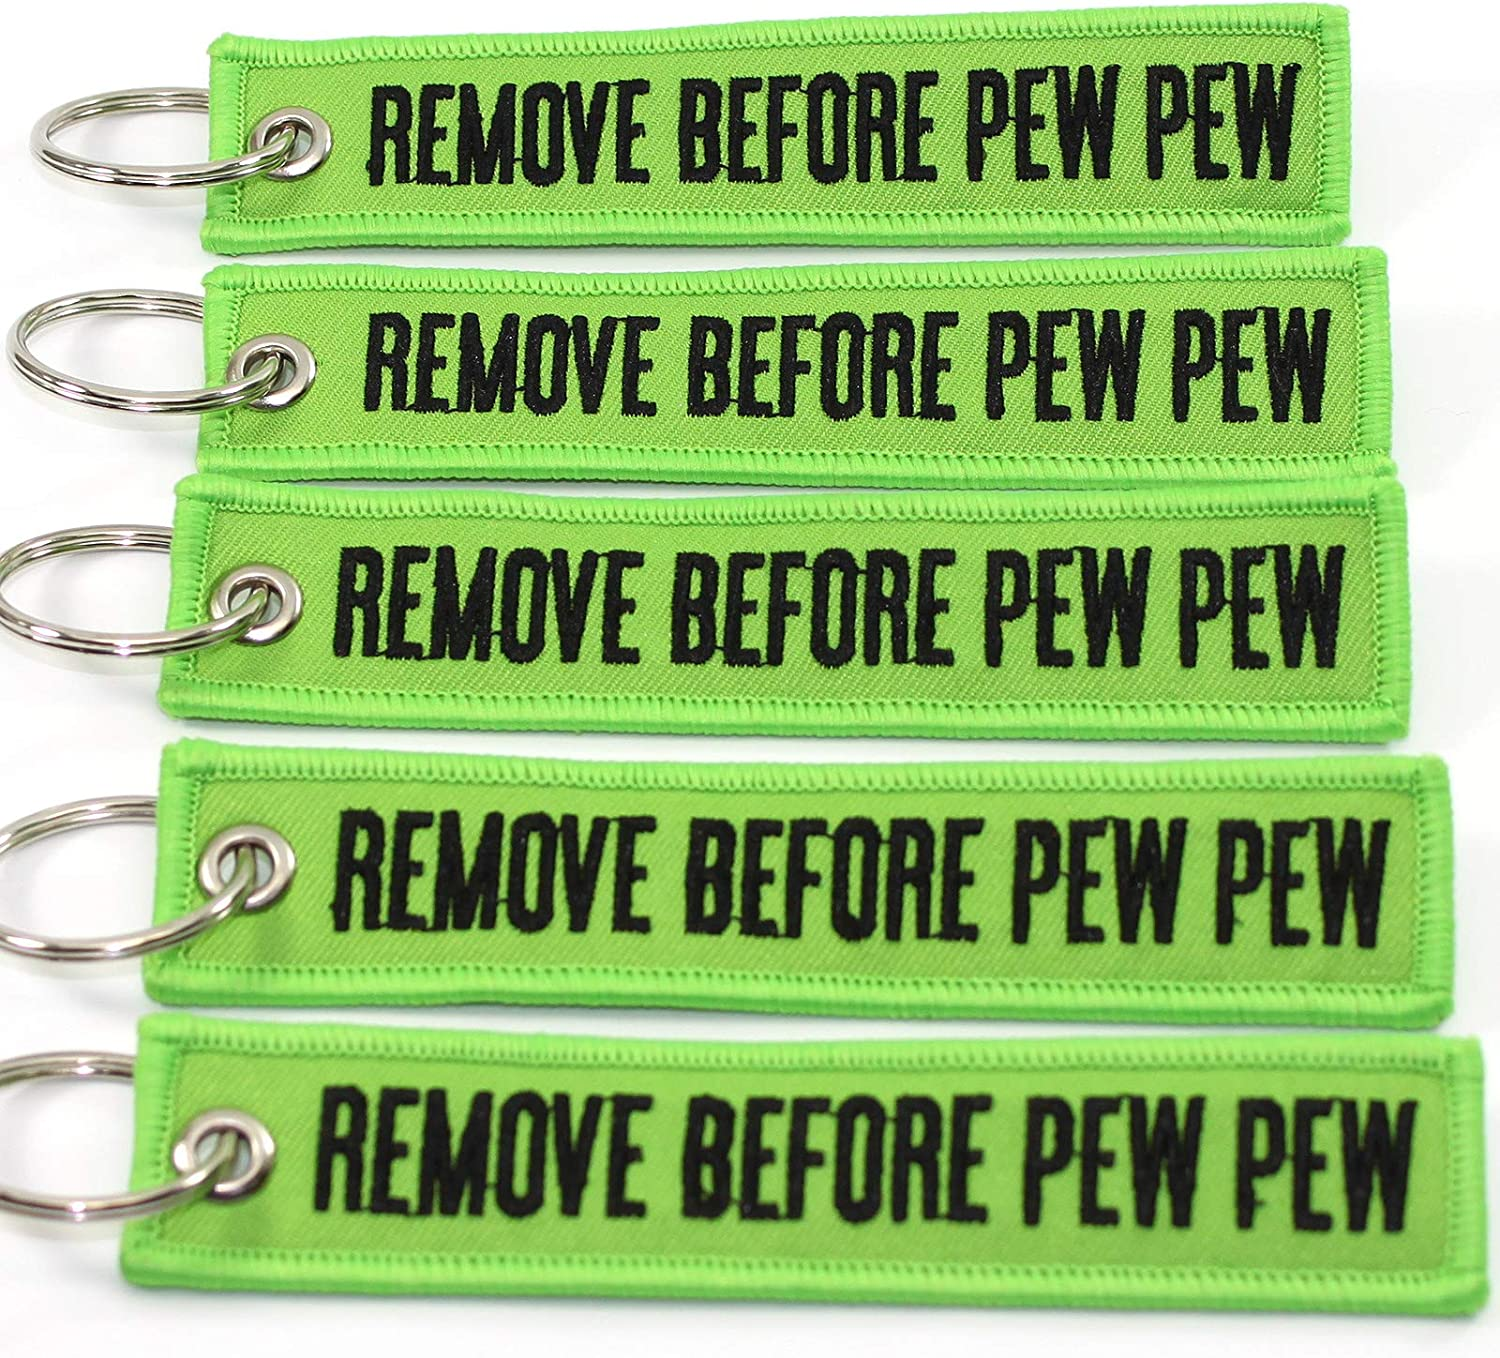 5 PEW PEW PEW! RED//White Chamber Flag Key Chain